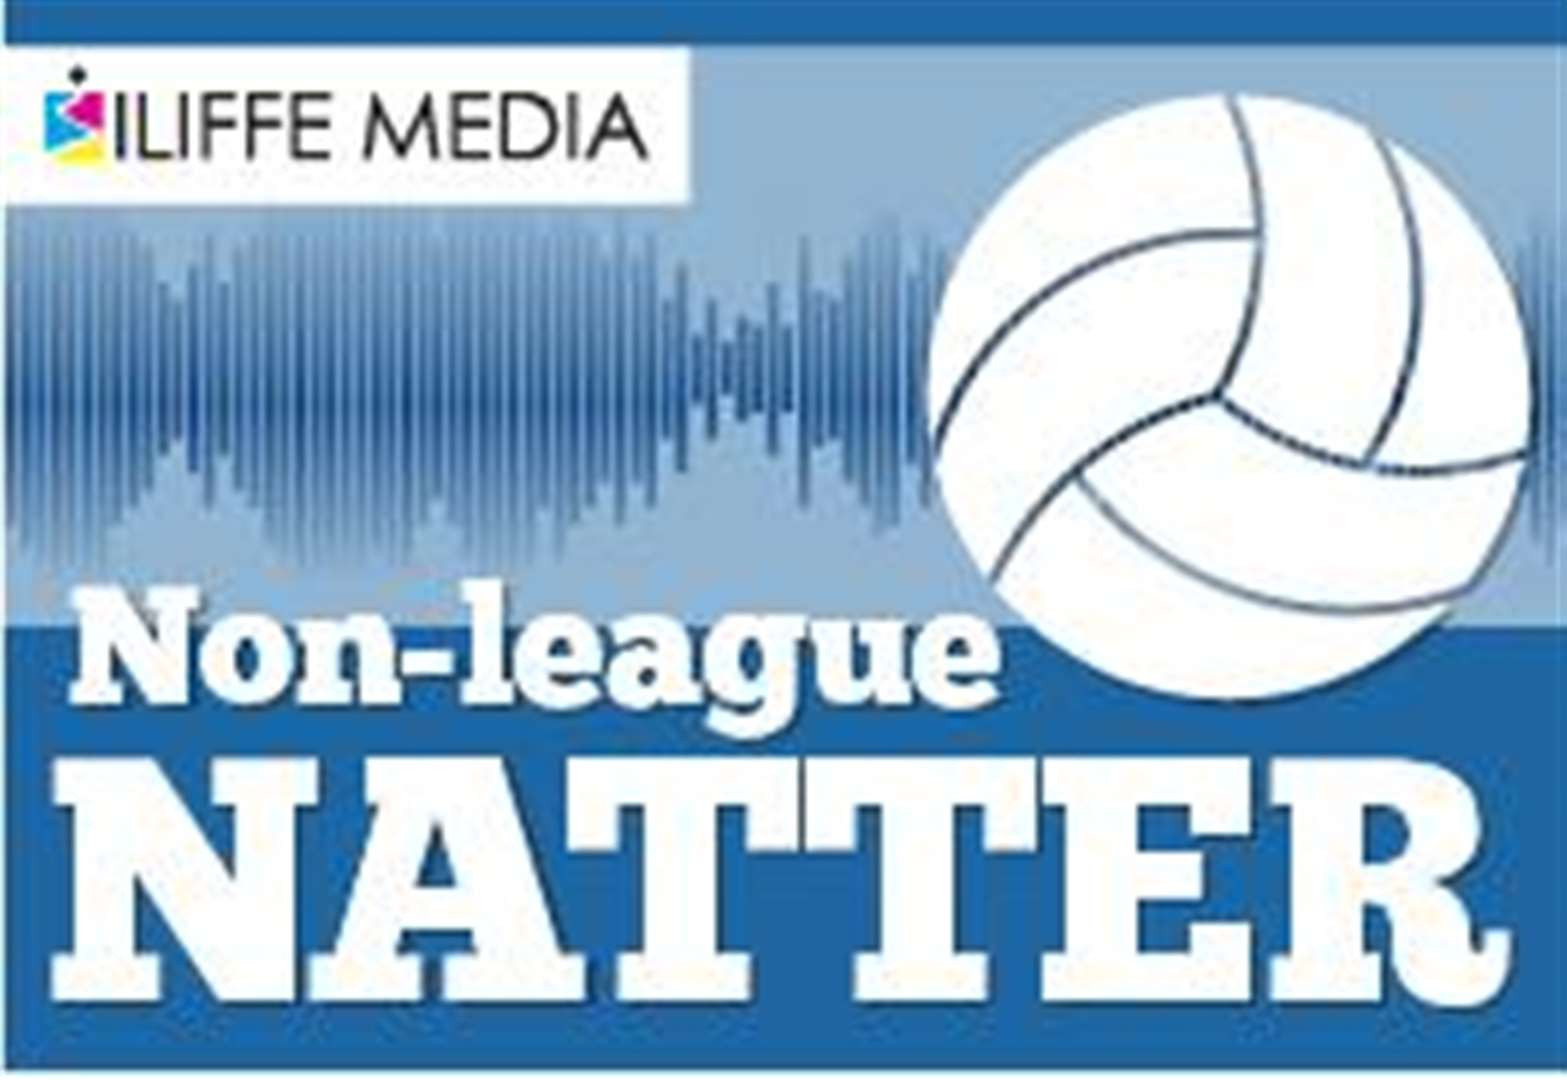 Non-League Natter podcast: Ep16